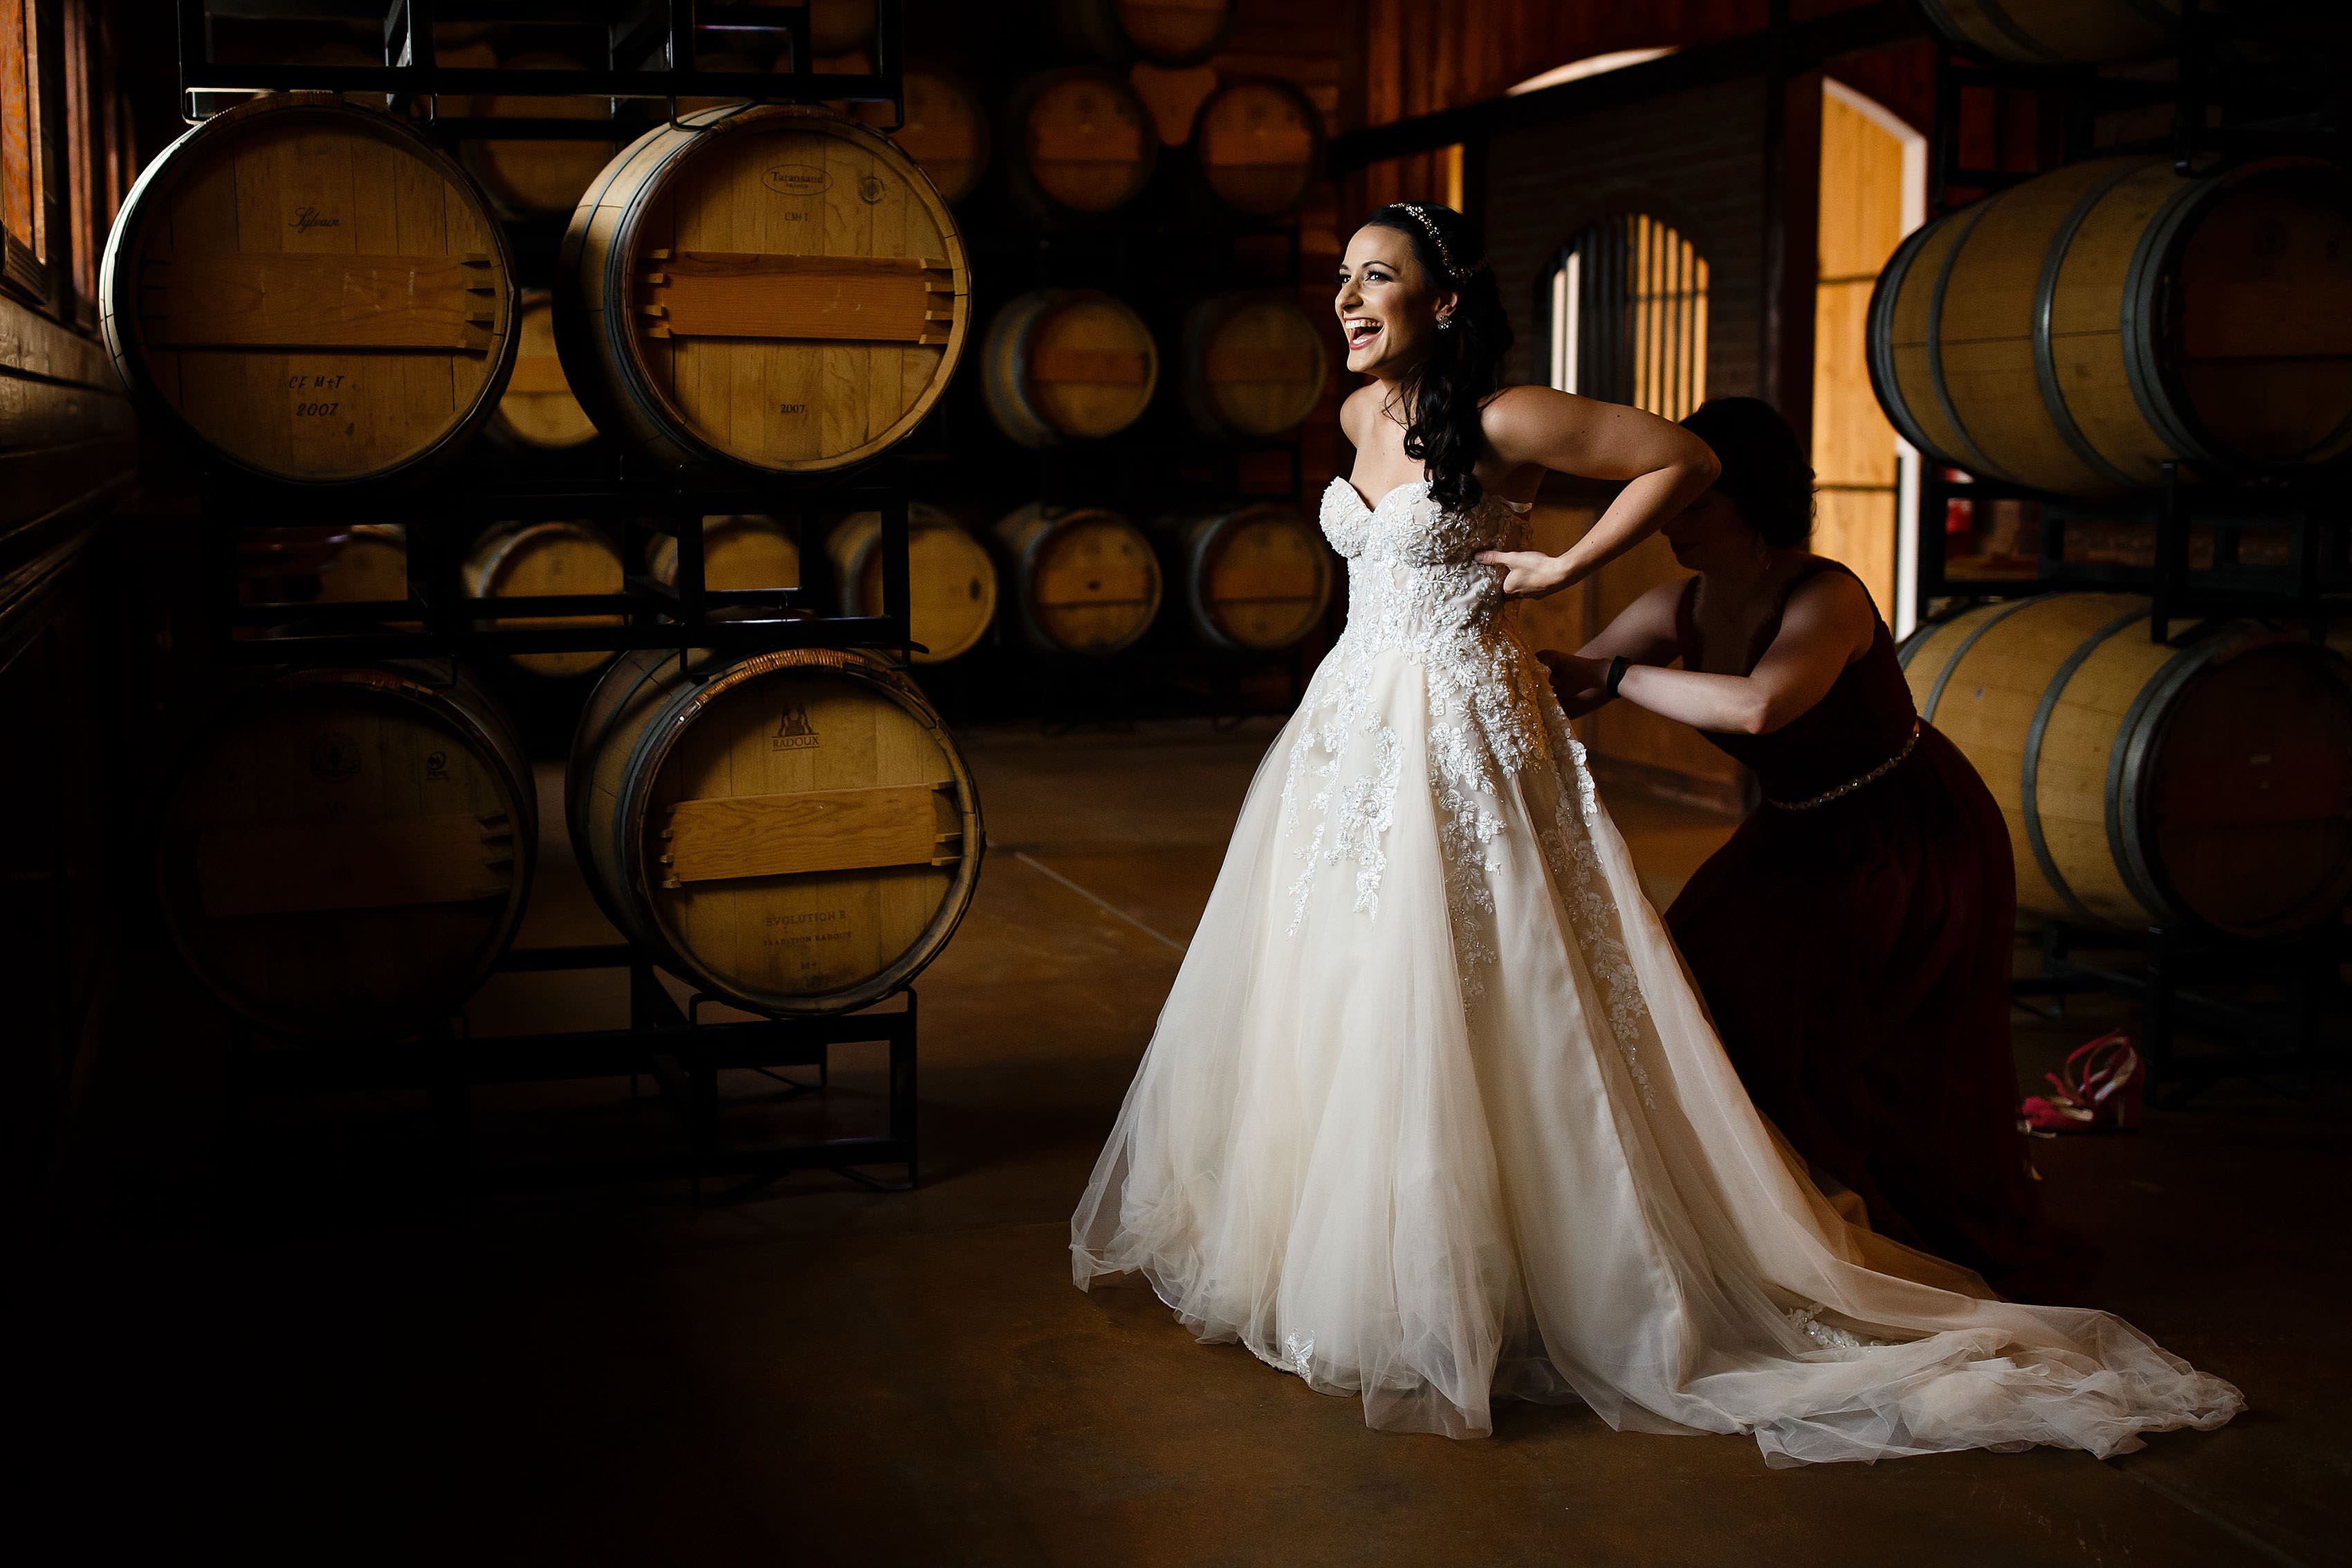 Danielle laughs while putting on her dress in the barrell room before her Crooked Willow Farms wedding in Larkspur